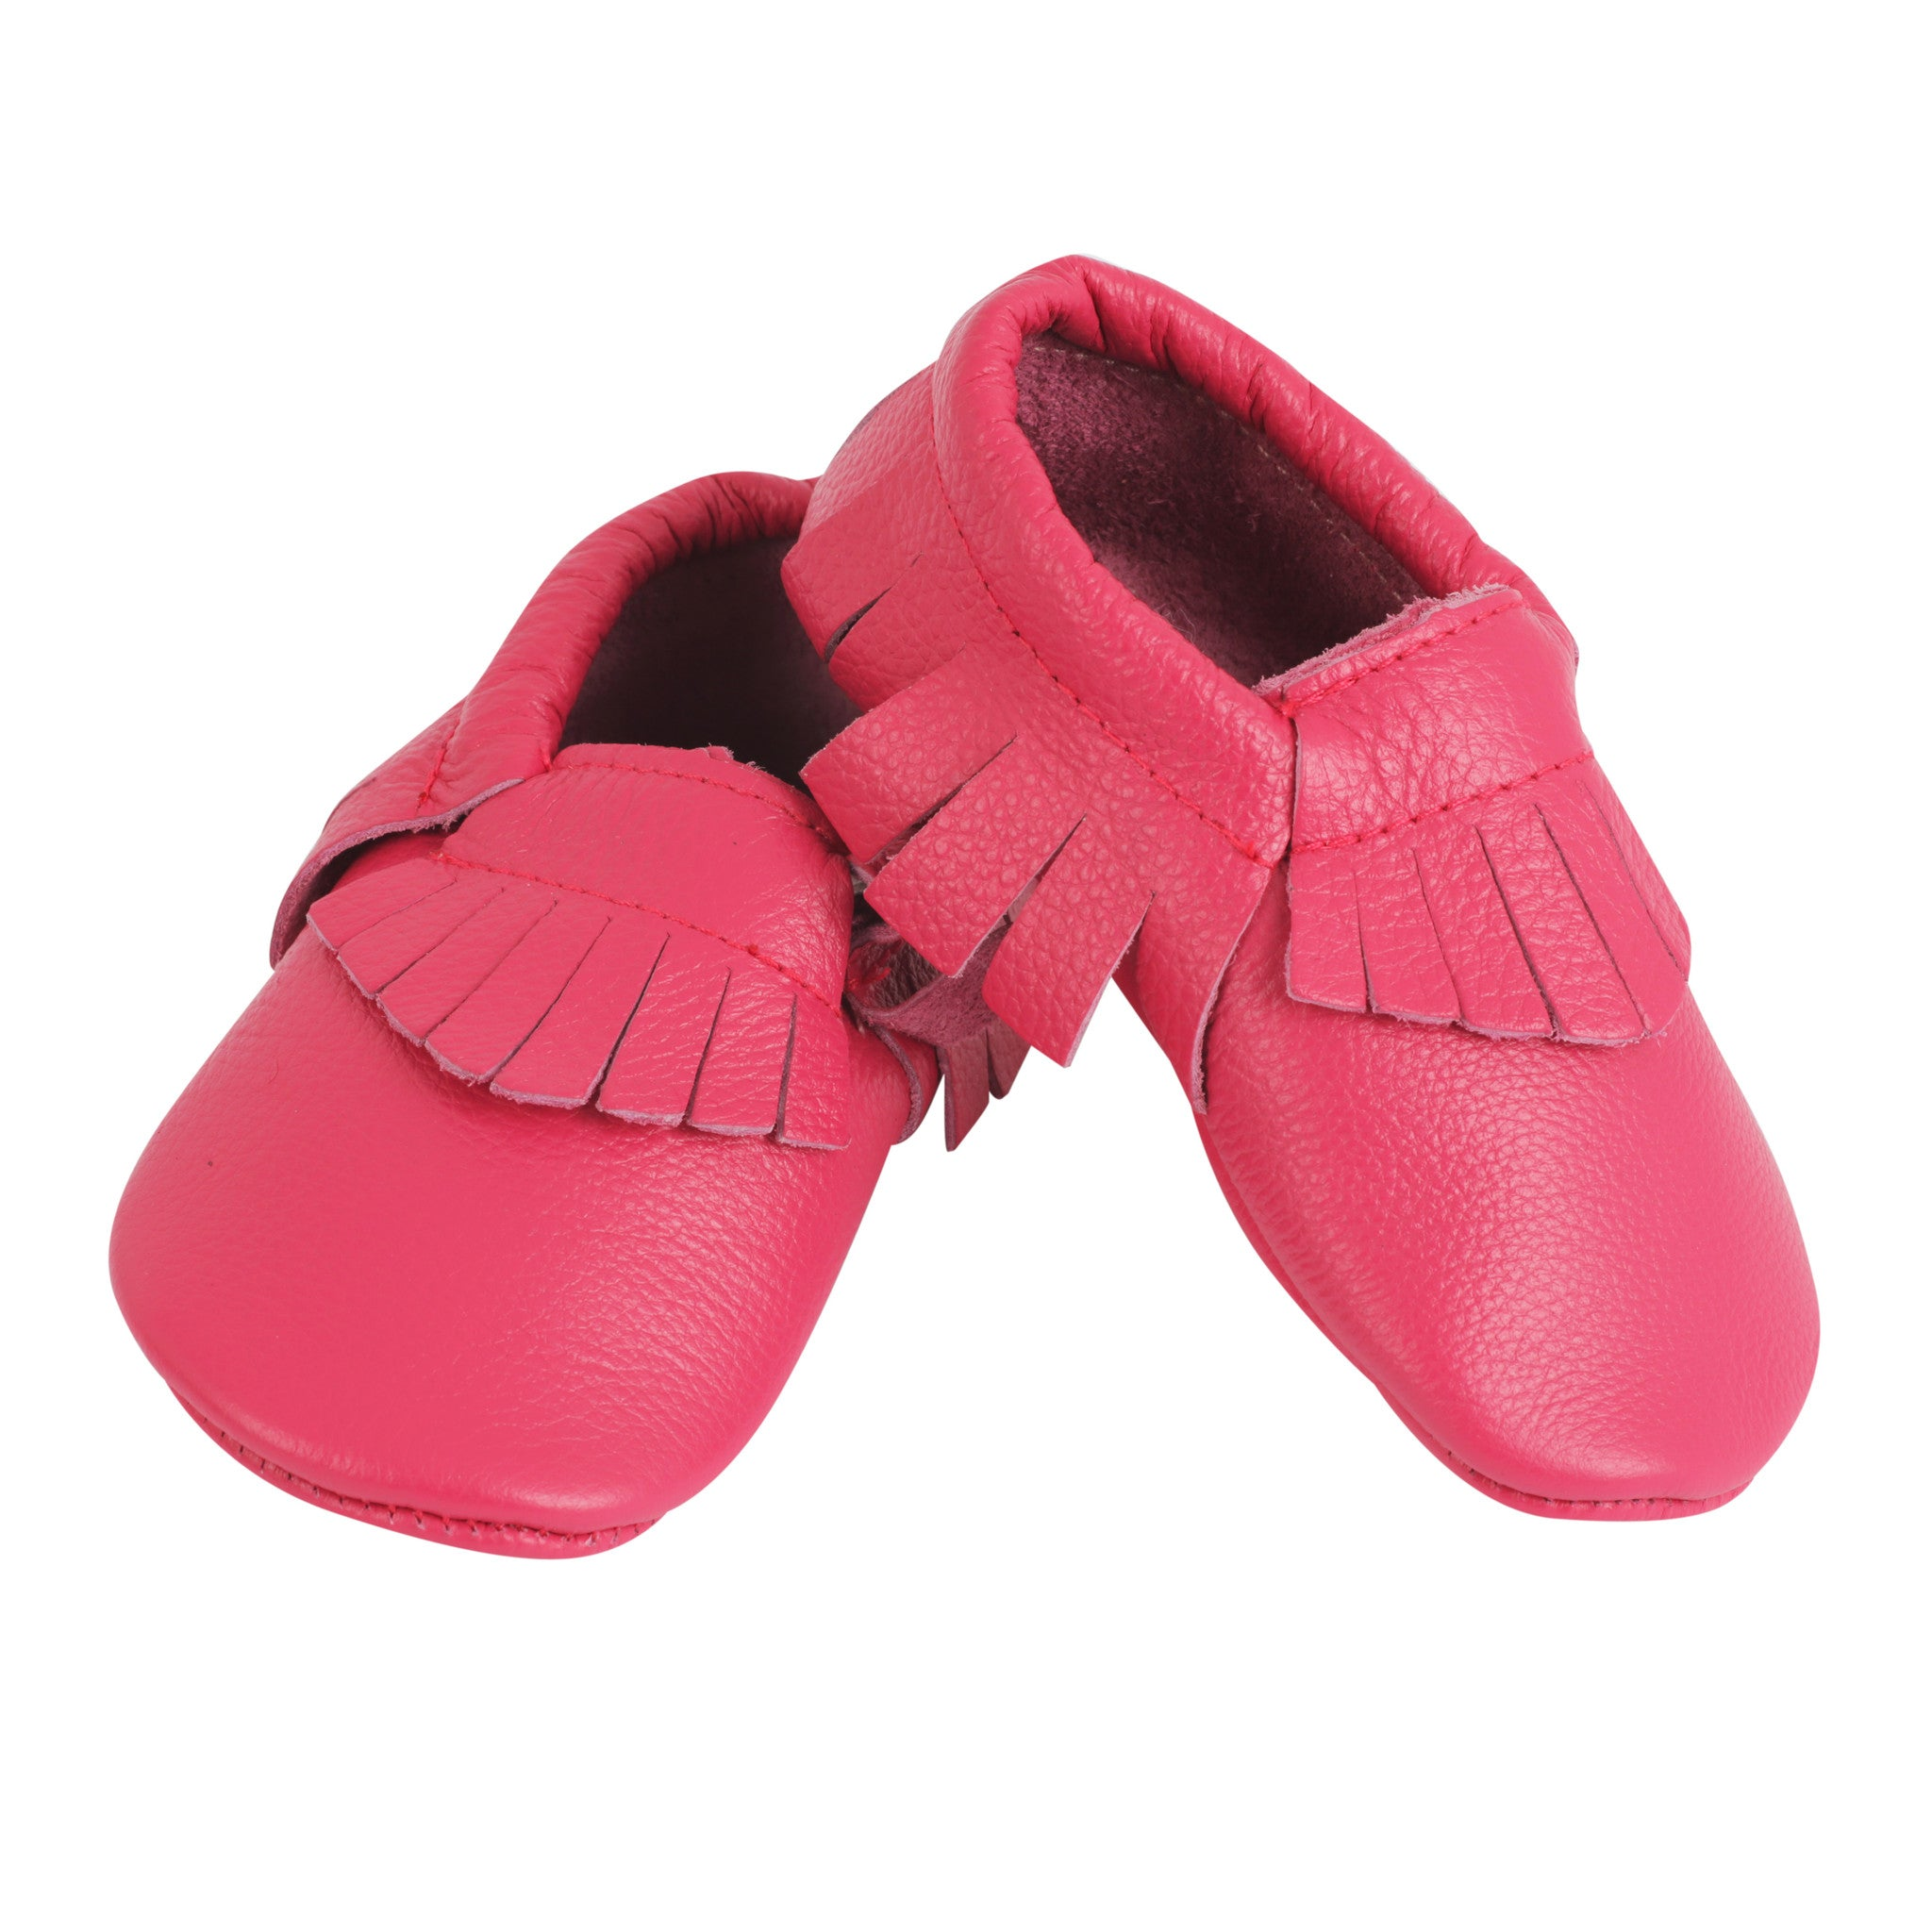 Moccasin, Pre-Walker Baby & Toddler Shoes - Lipstick Pink